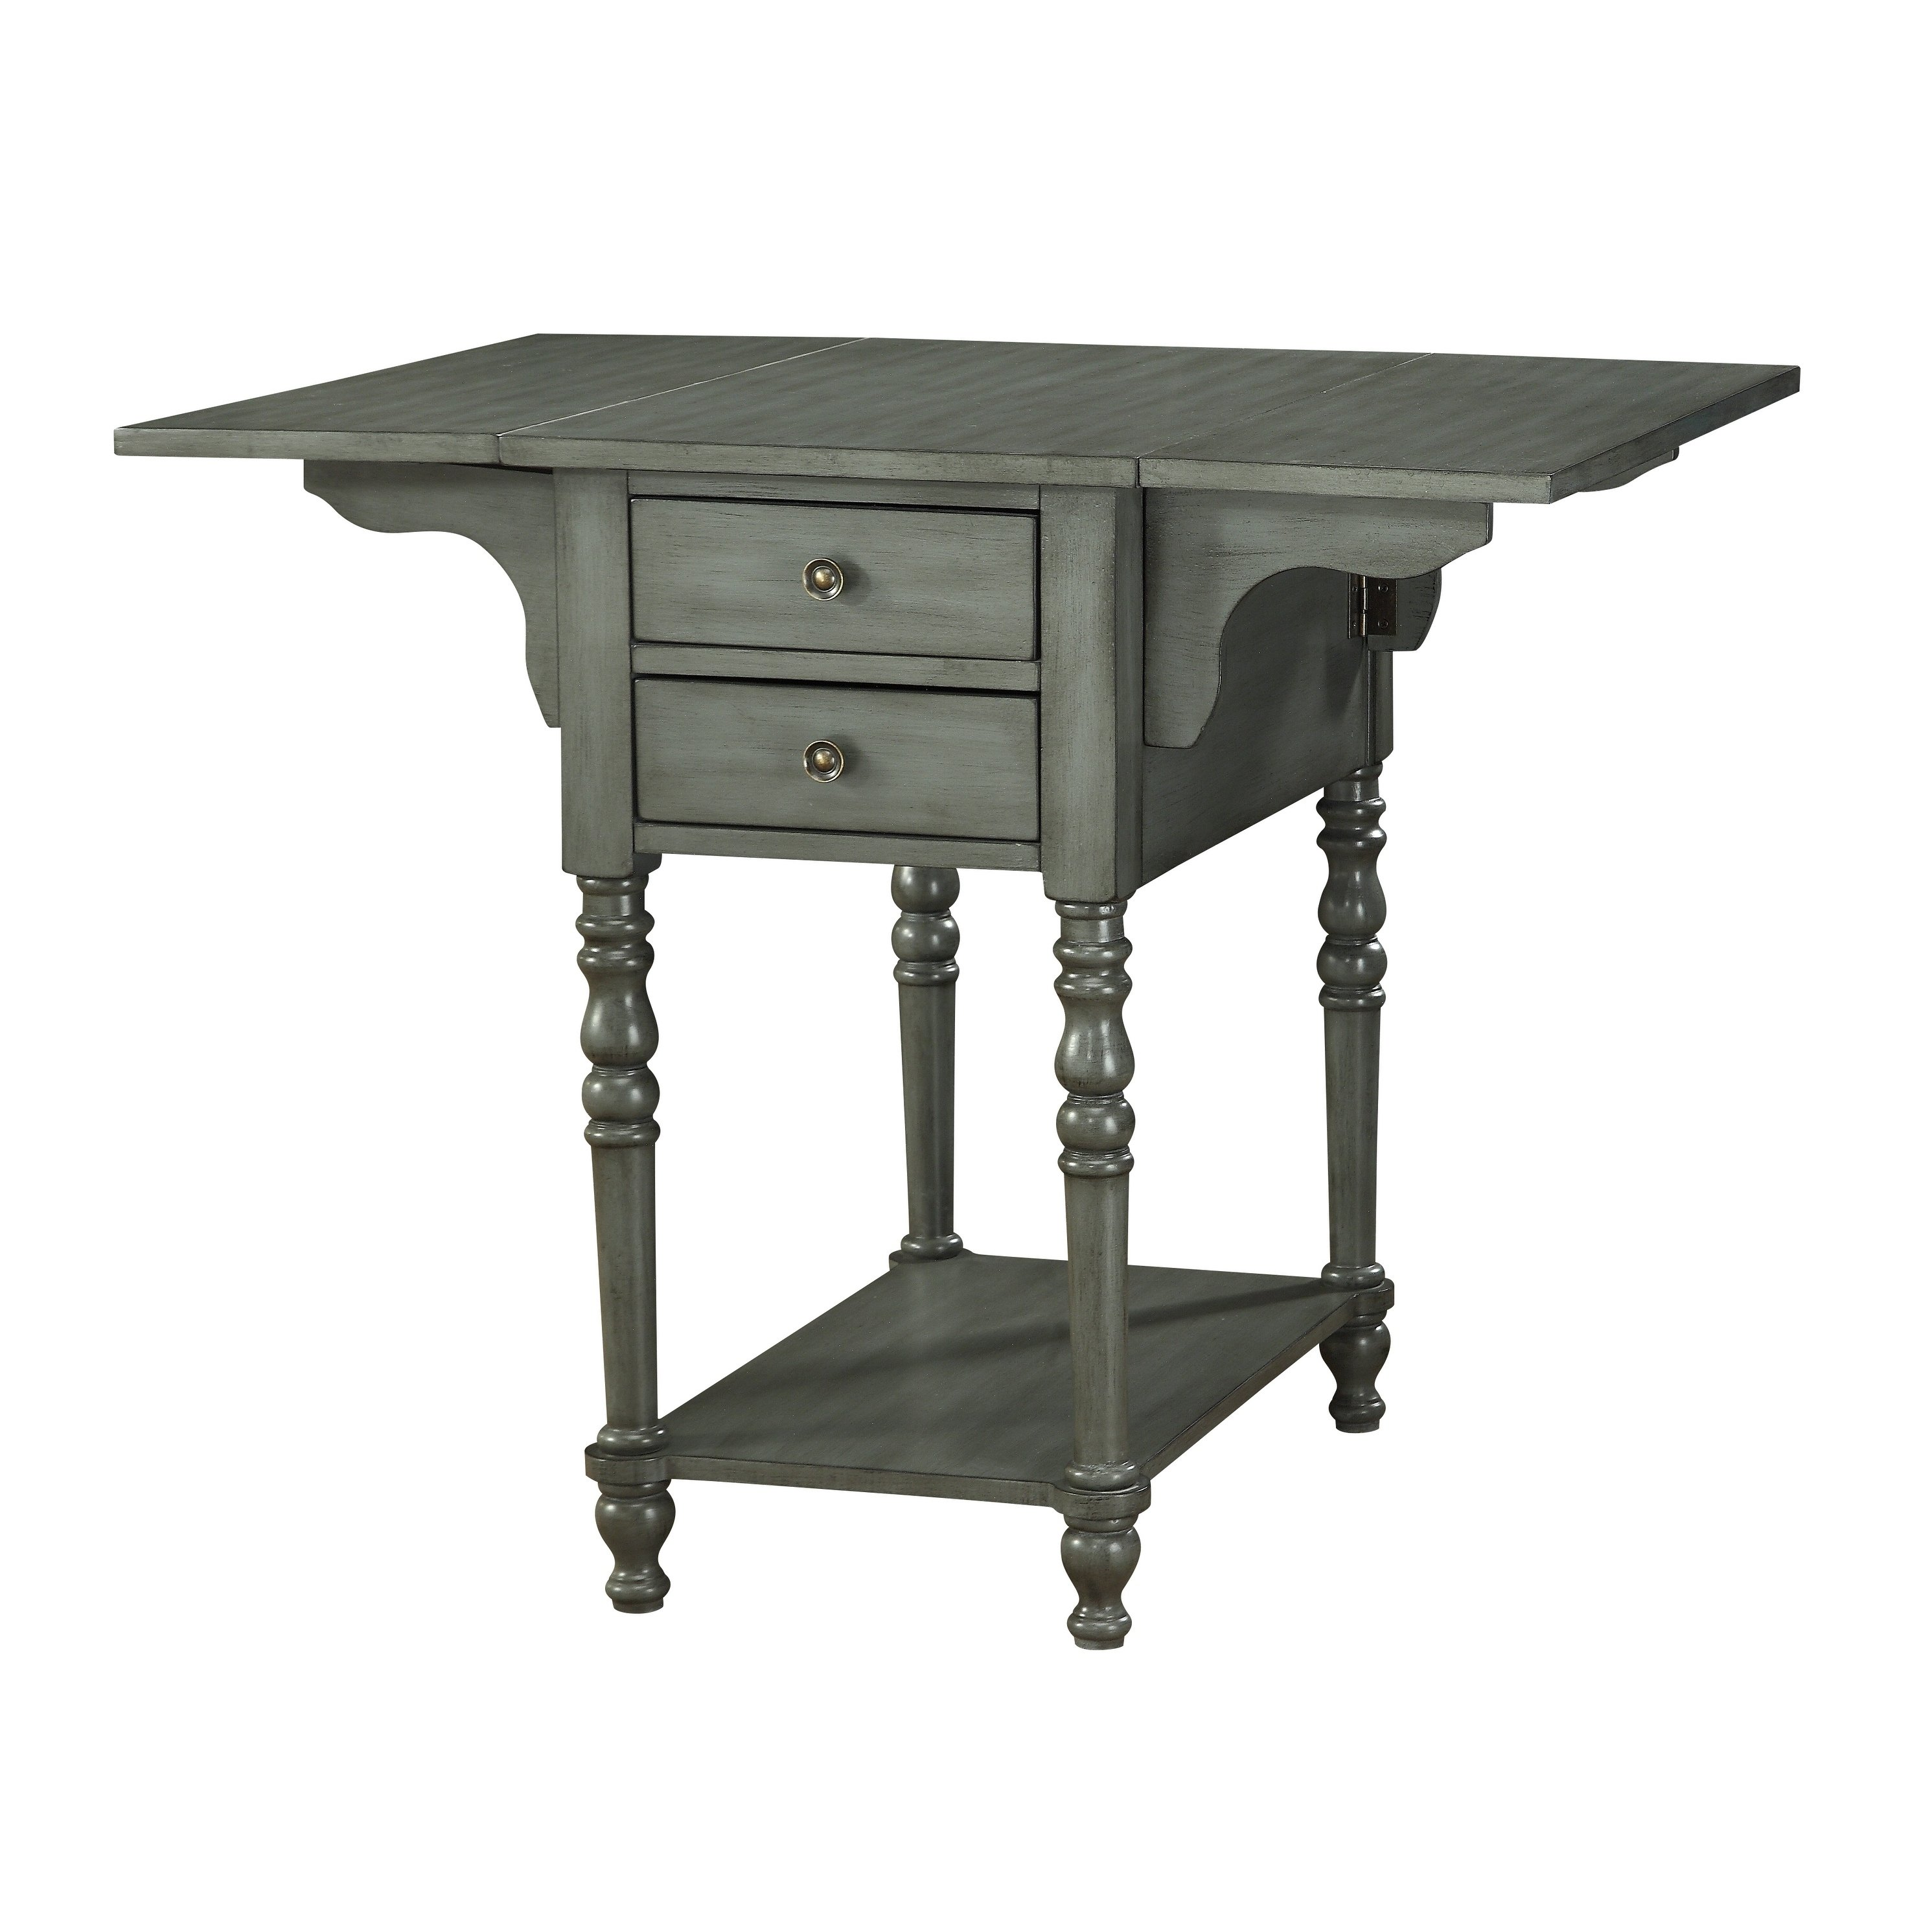 treasure trove small drop leaf drawer accent table free grey shipping today armchairs for living room ashley furniture trunk coffee wood top ideas outdoor dining with umbrella